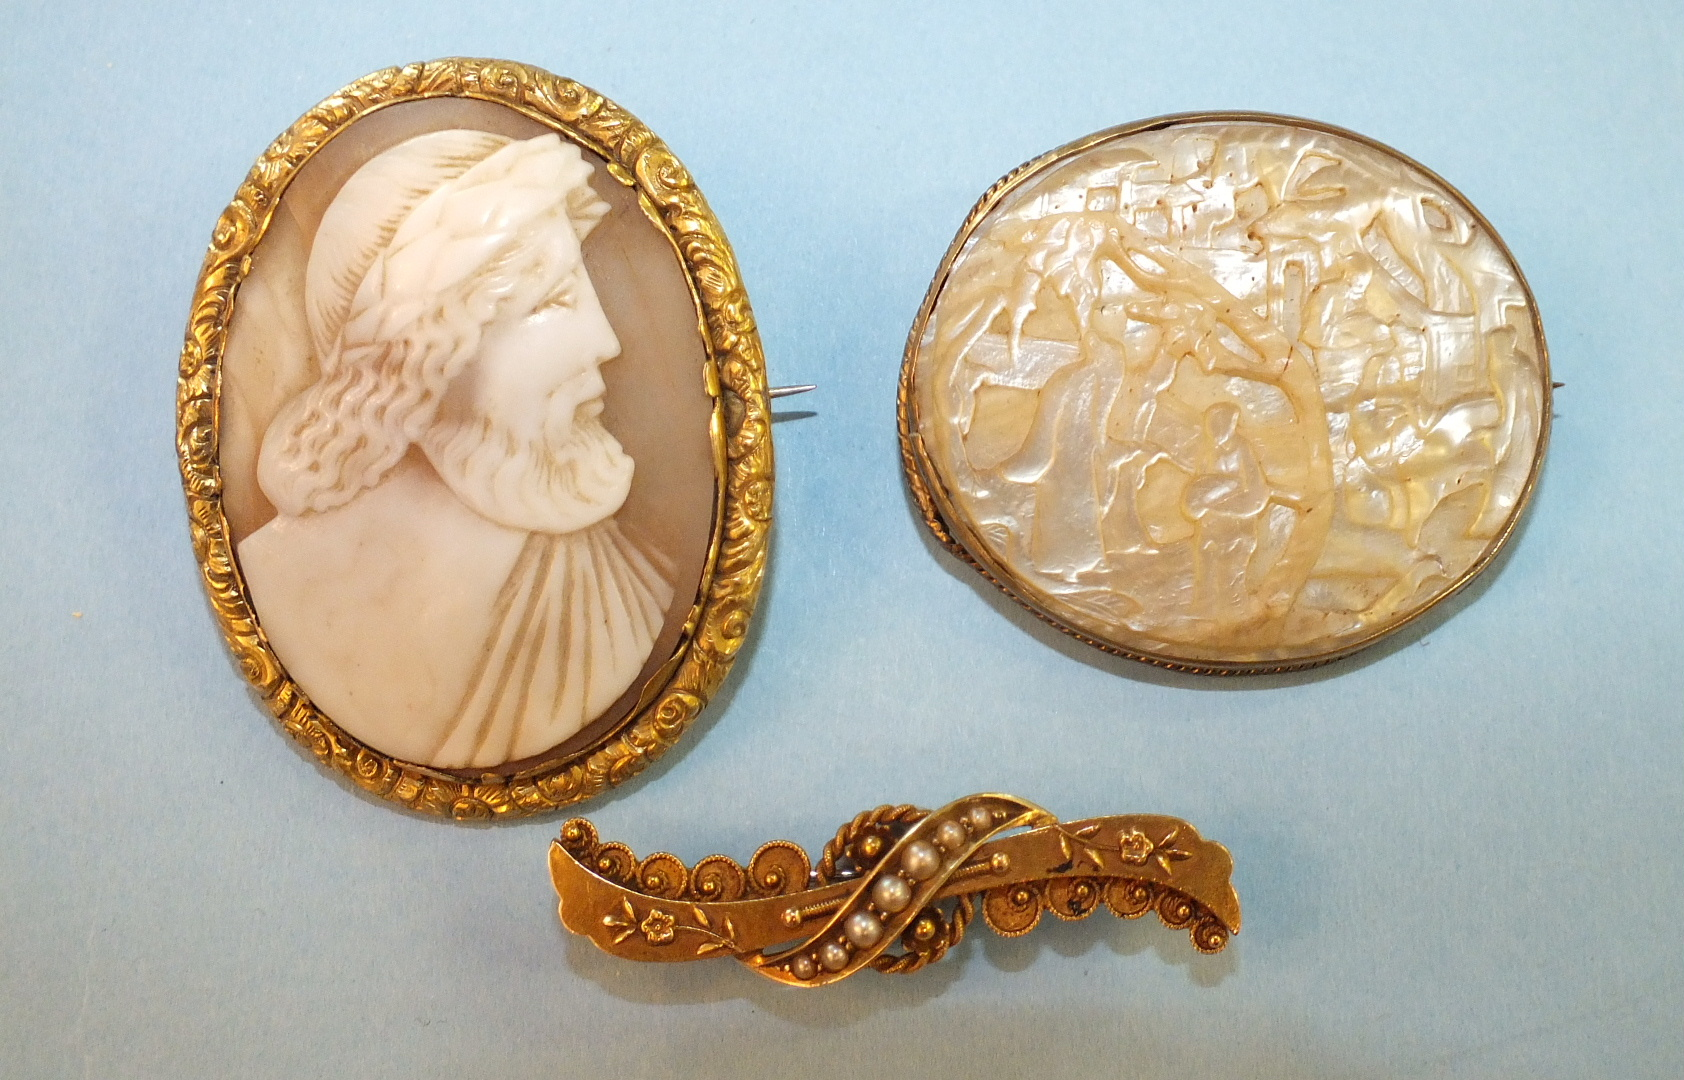 Lot 173 - A Chinese mother-of-pearl brooch carved with figures and a tree, in yellow metal mount, a shell